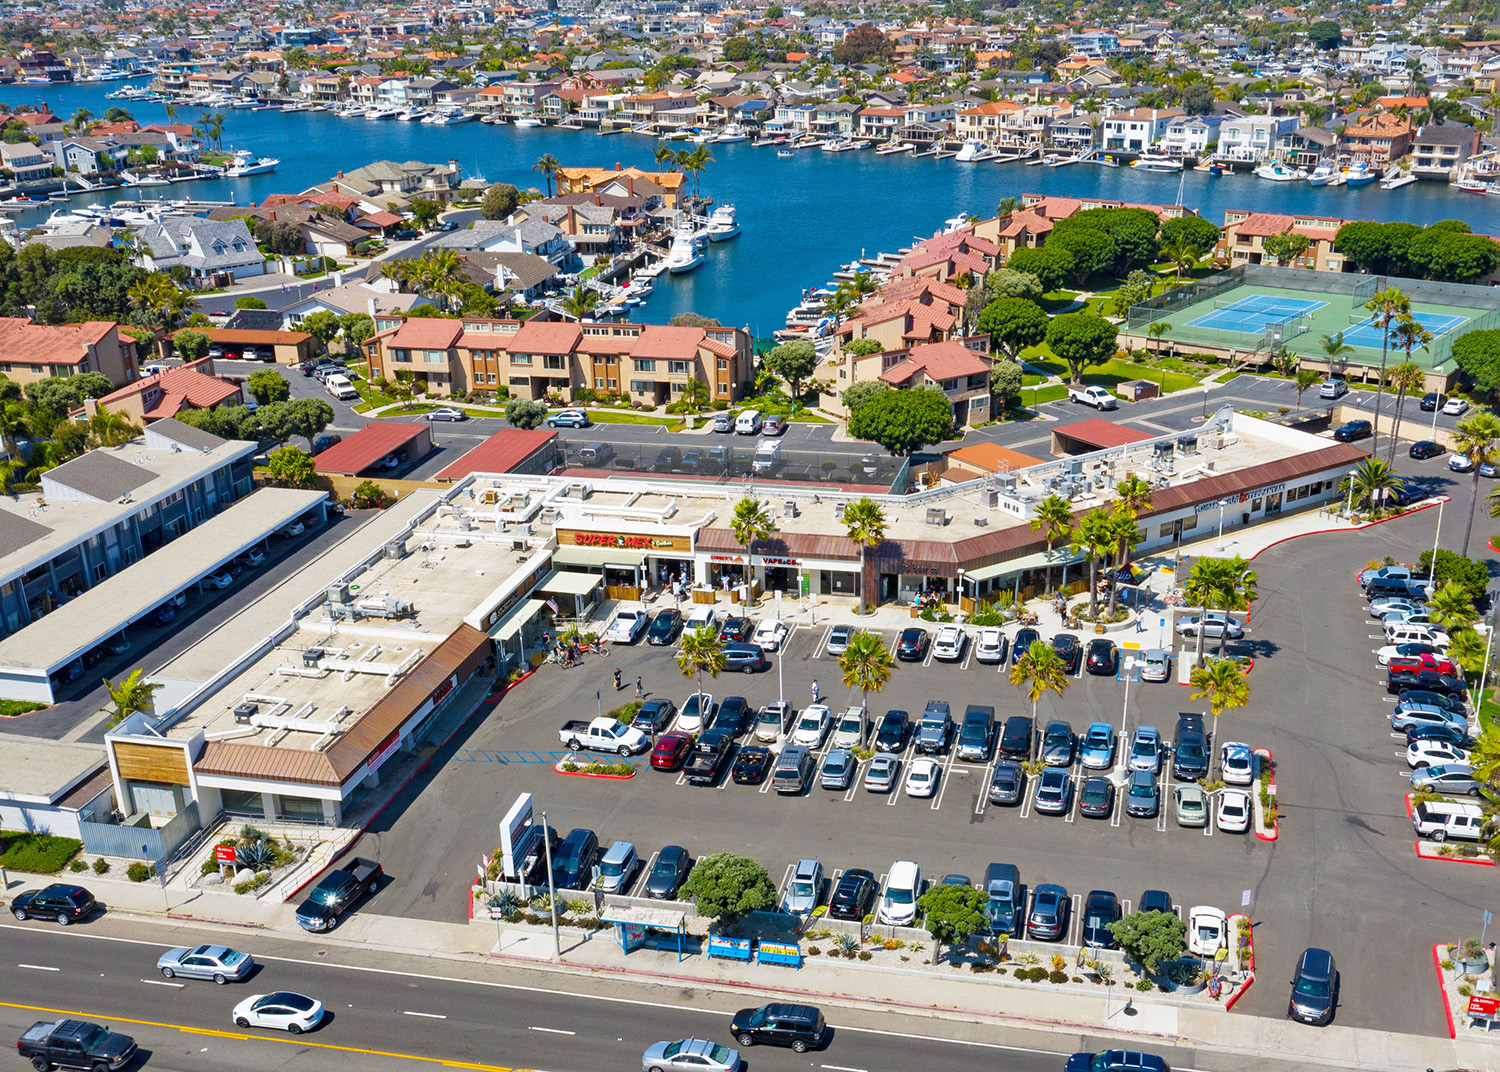 Hanley Investment Group Arranges Sale of Newly Renovated Pride of Ownership Multi-Tenant Coastal Orange County Retail Investment